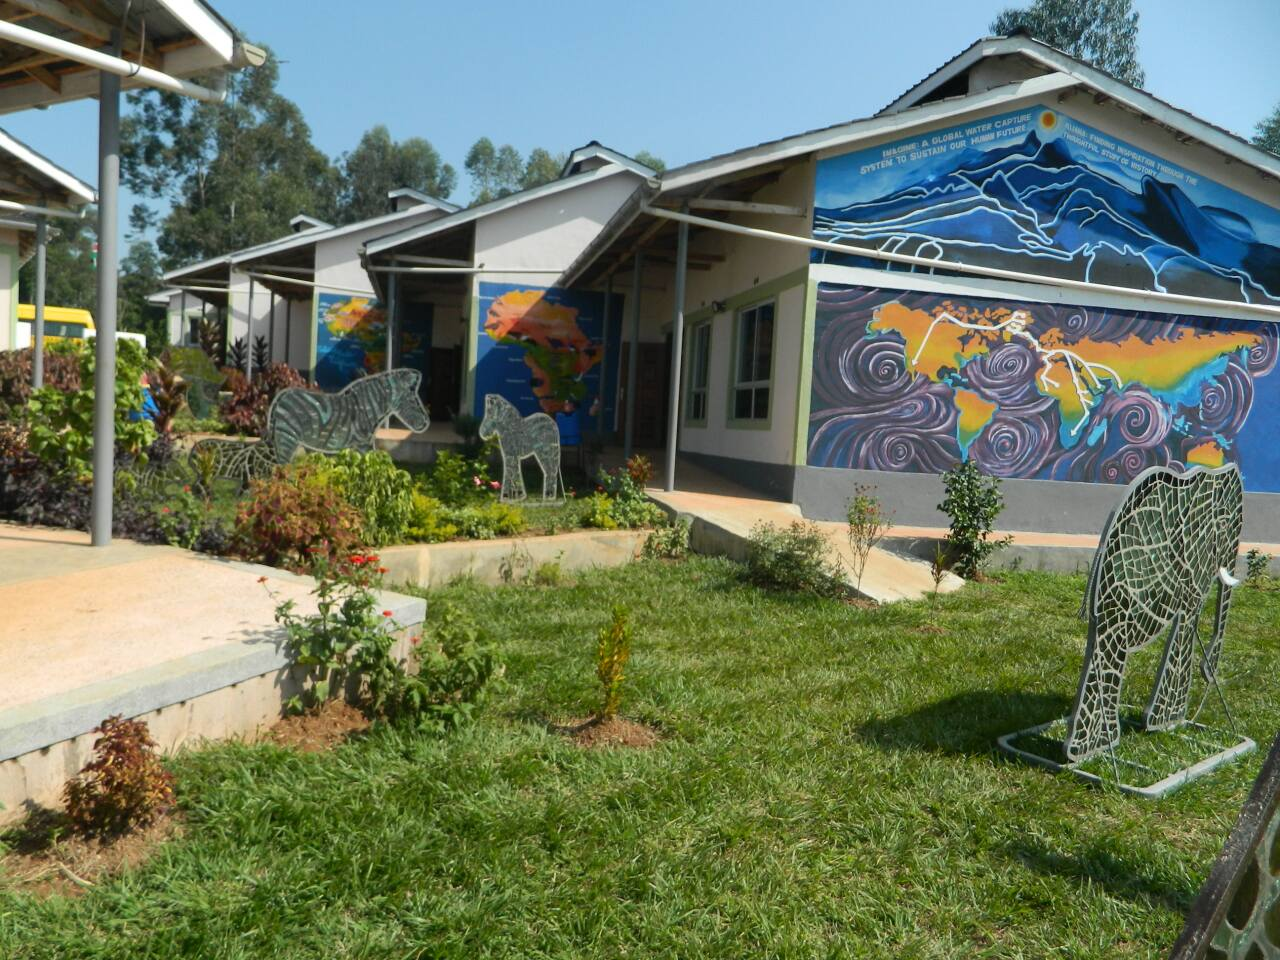 Murals of Africa painted on the sides of a school building.